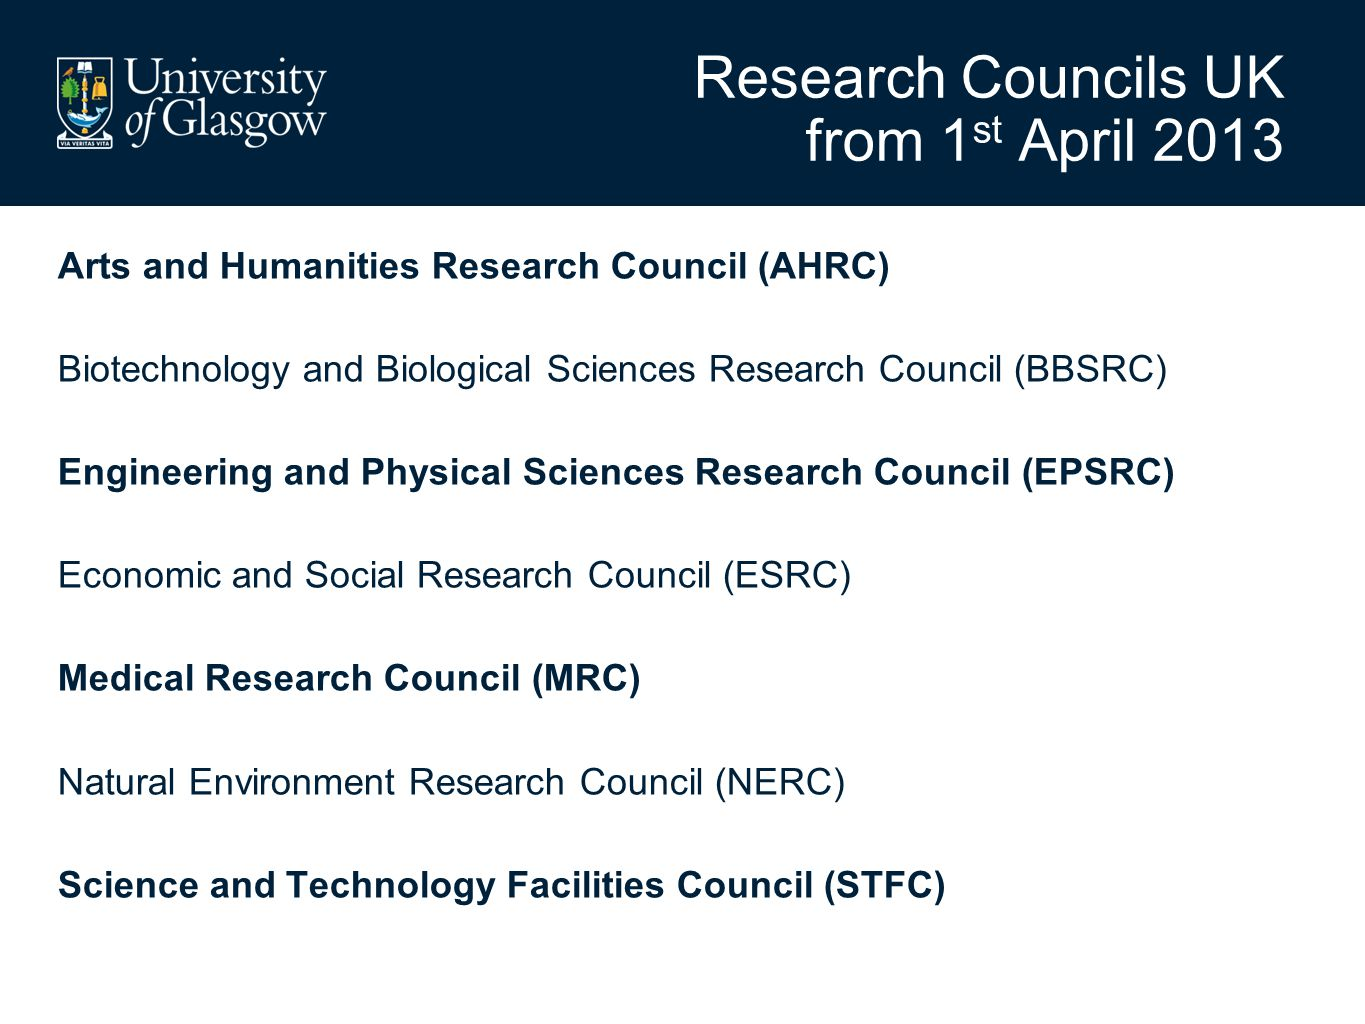 Research Councils UK from 1 st April 2013 Arts and Humanities Research Council (AHRC) Biotechnology and Biological Sciences Research Council (BBSRC) Engineering and Physical Sciences Research Council (EPSRC) Economic and Social Research Council (ESRC) Medical Research Council (MRC) Natural Environment Research Council (NERC) Science and Technology Facilities Council (STFC)